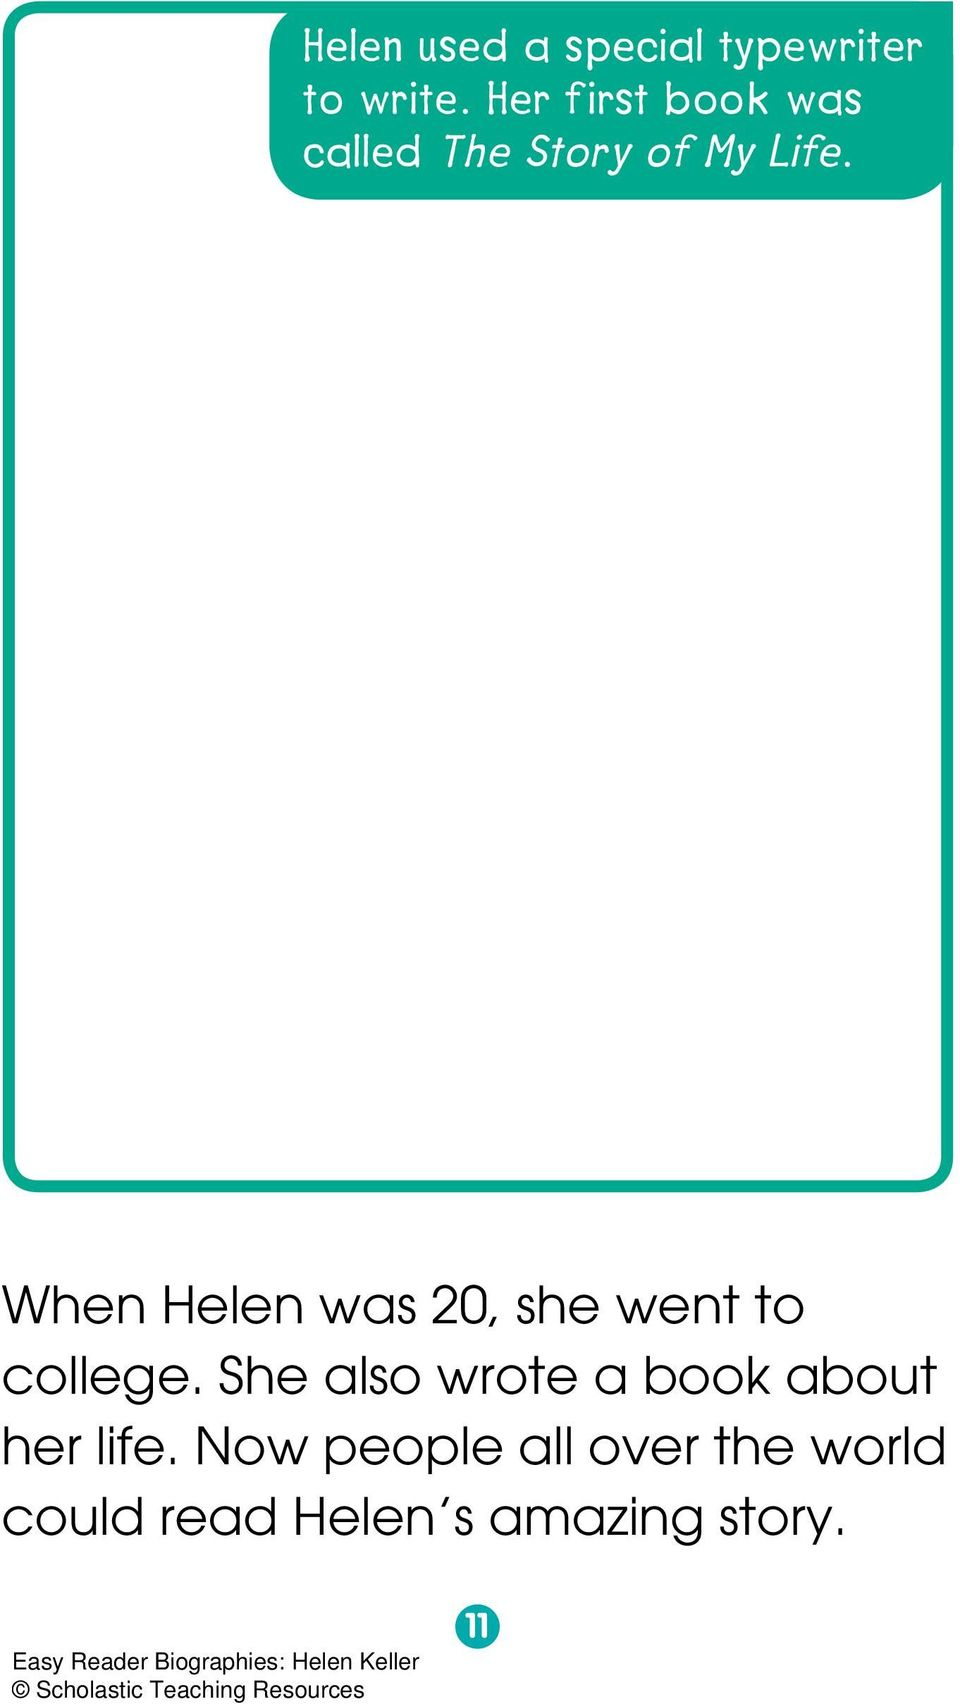 When Helen was 20, she went to college.